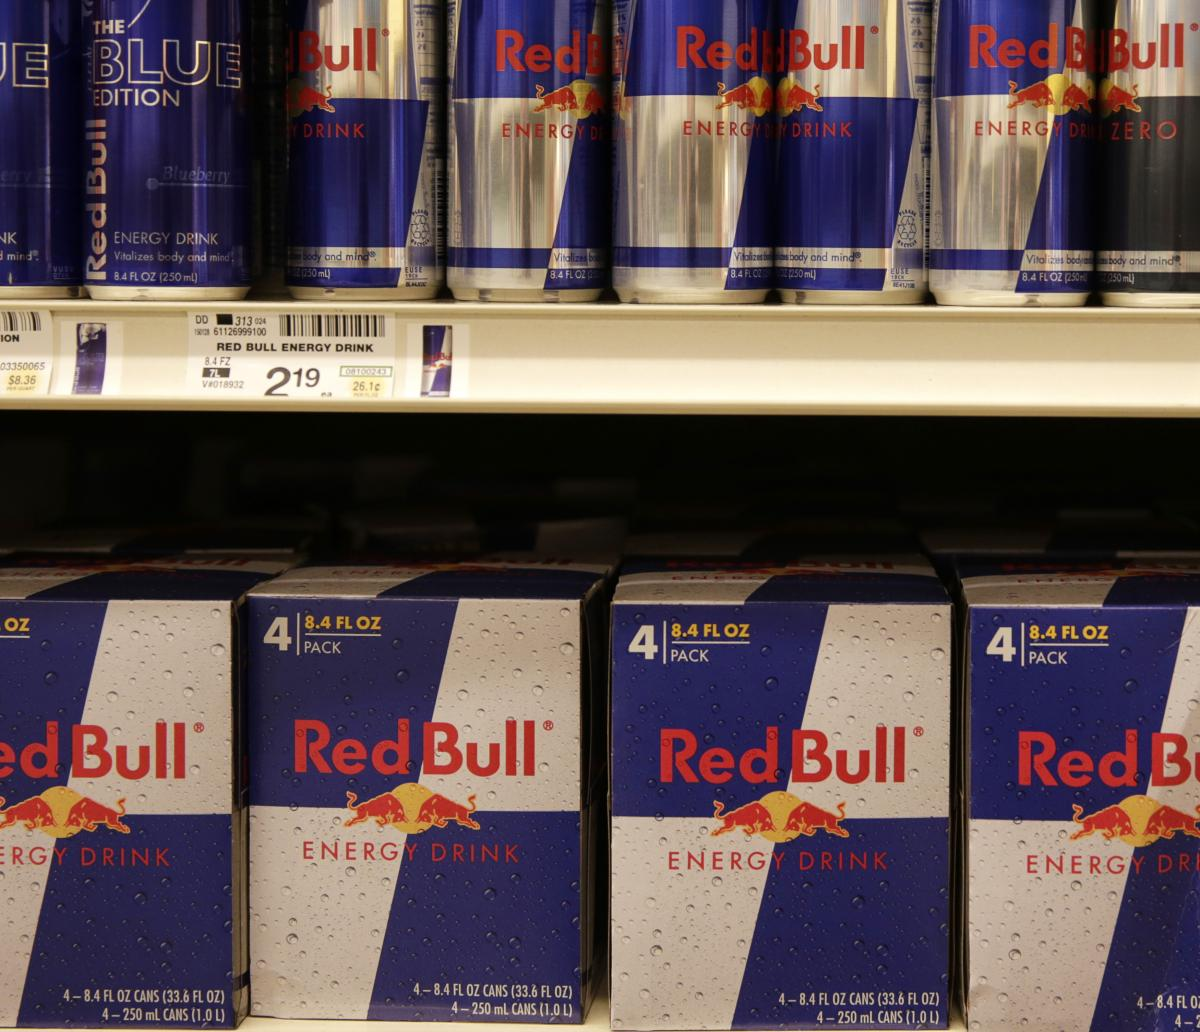 Sugary Energy Drinks Bad For Kids Should Be Banned For